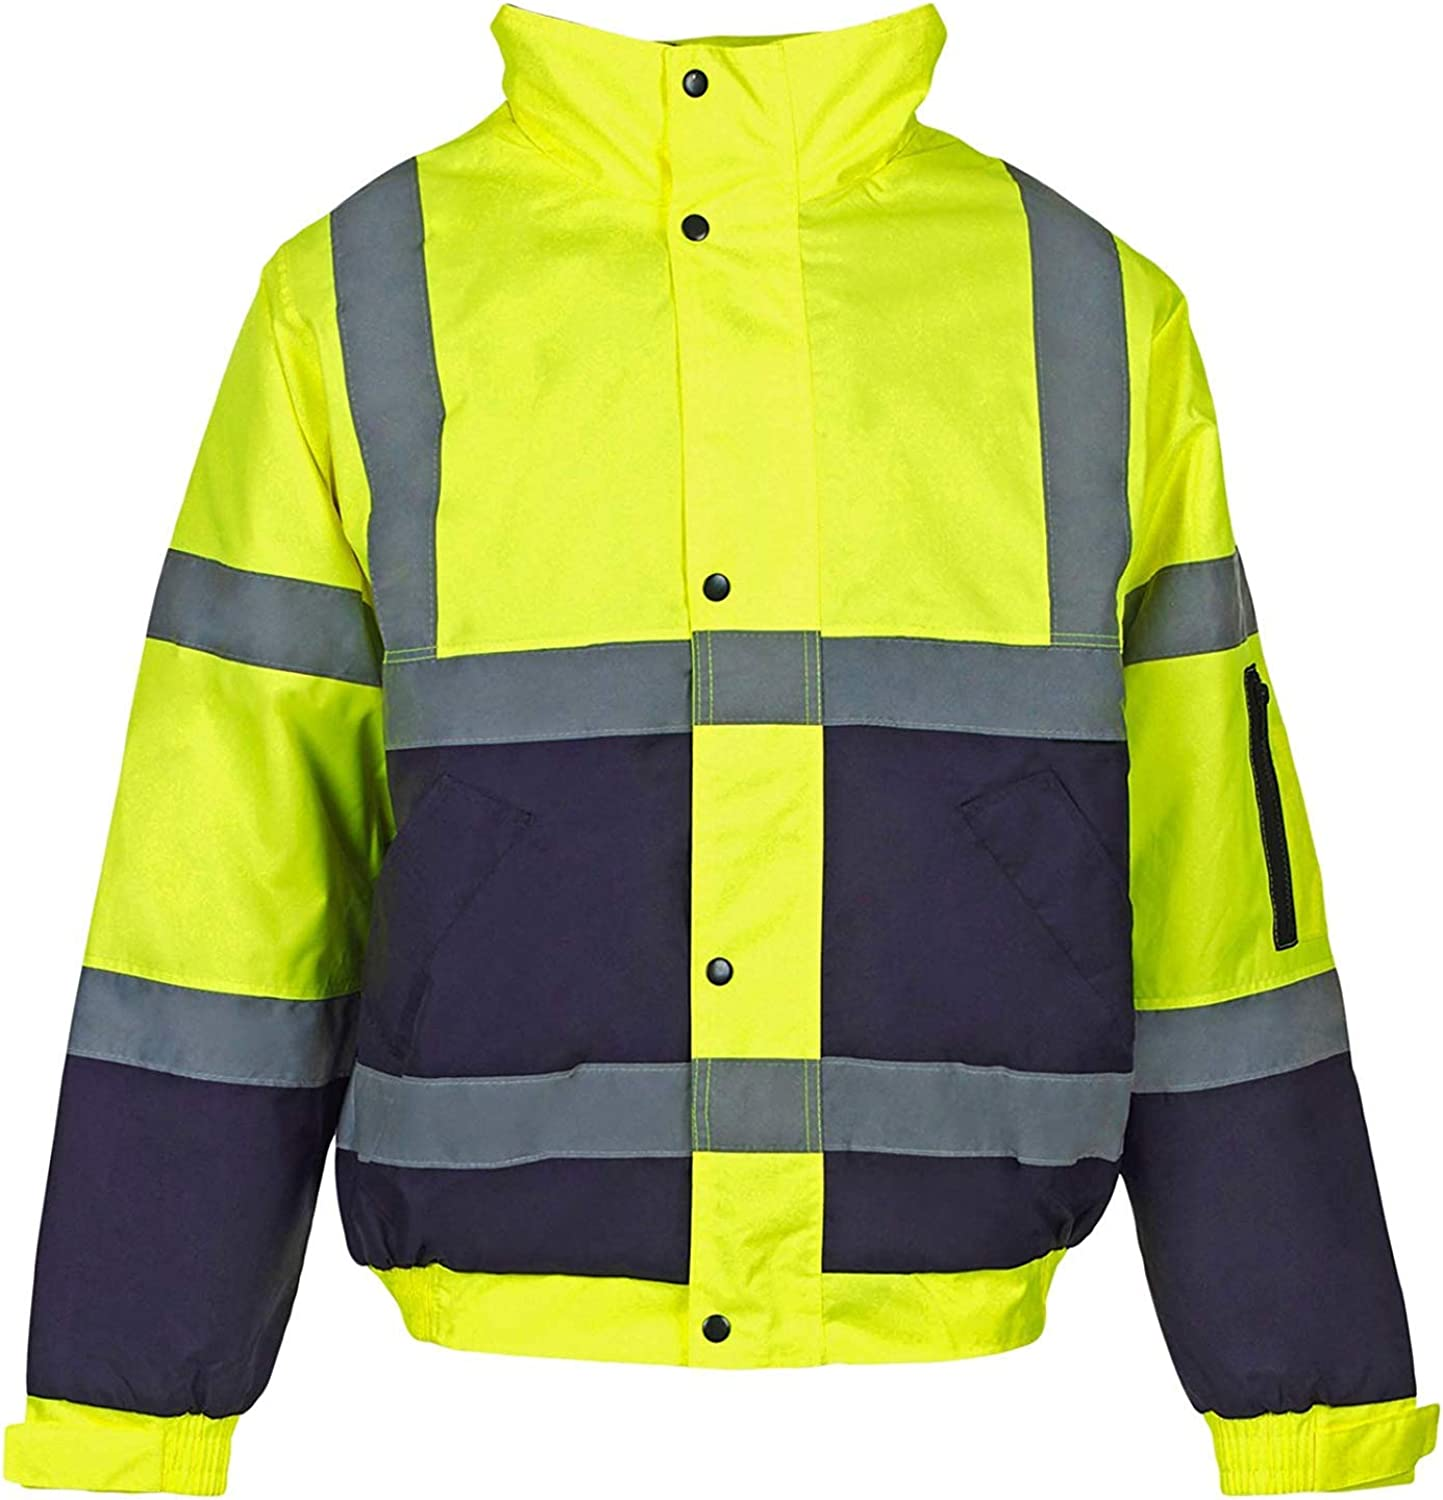 MyShoeStore Hi Viz Vis Bomber Jacket High Visibility Security Workwear Safety Wear Fluorescent Flashing Reflective Tape Contractor Concealed Hood Waterproof Padded Hooded Work Coat Top Size S-4XL